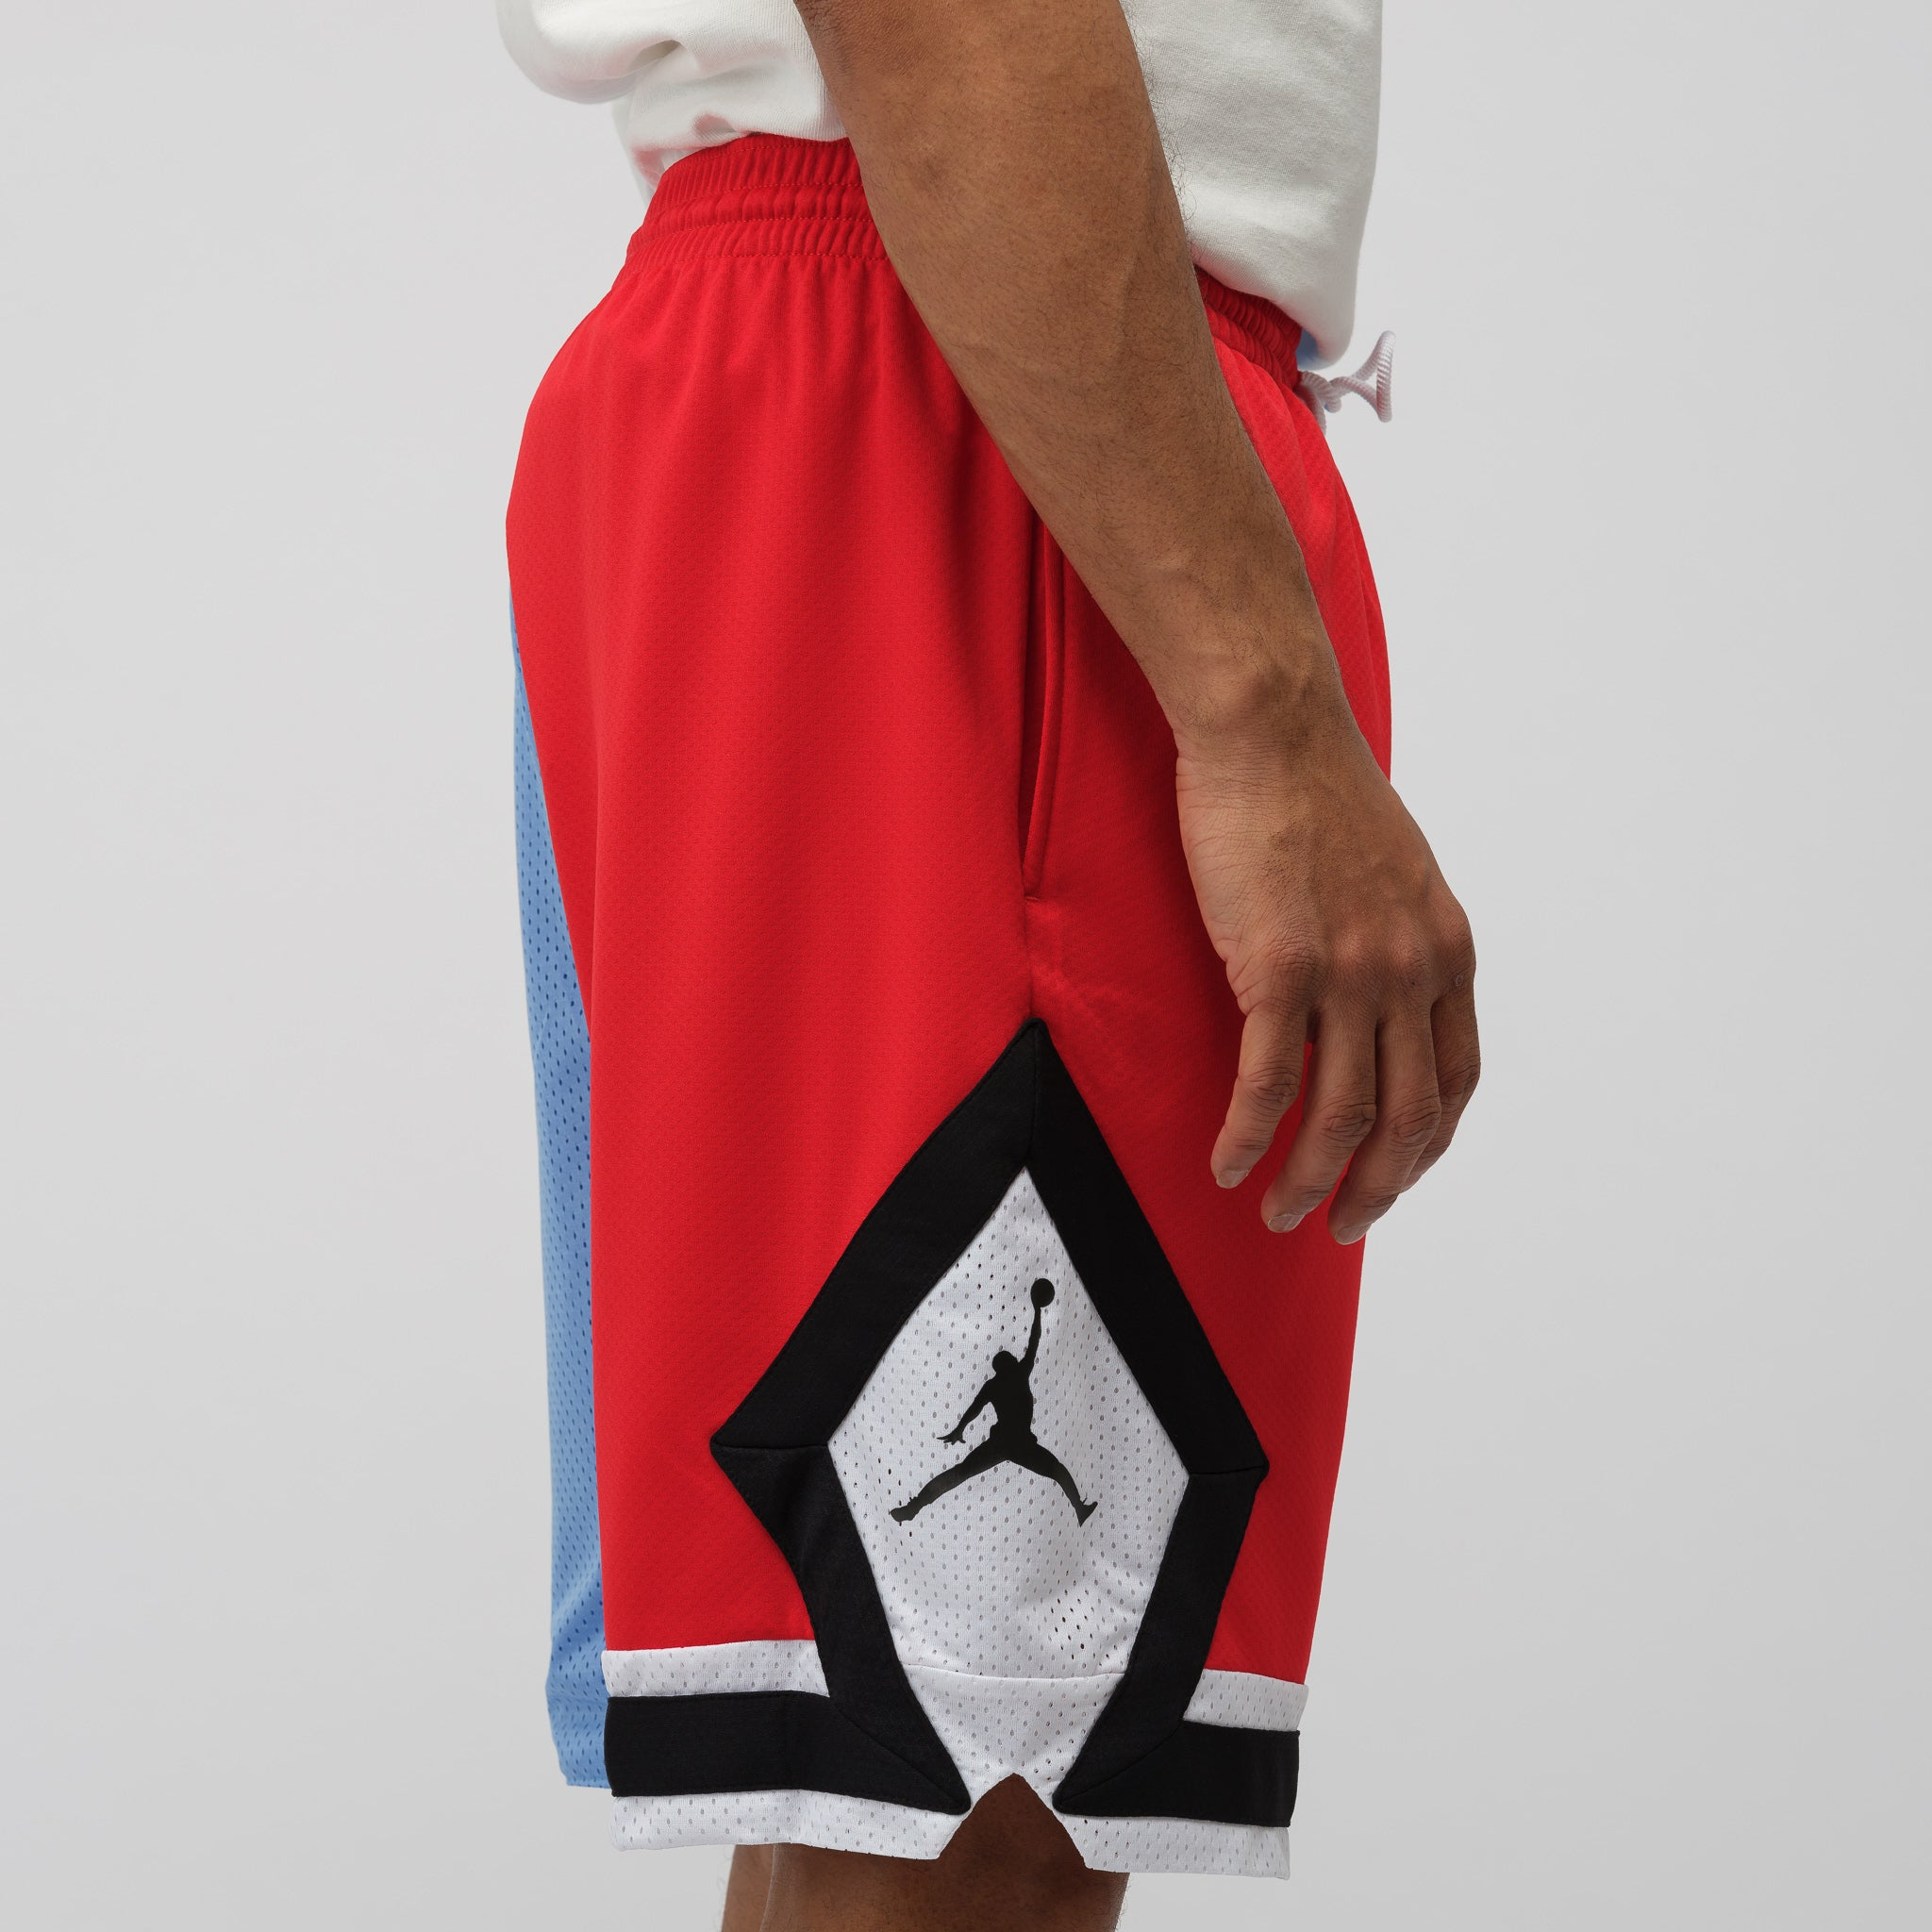 DNA Distorted Shorts in Blue/Red